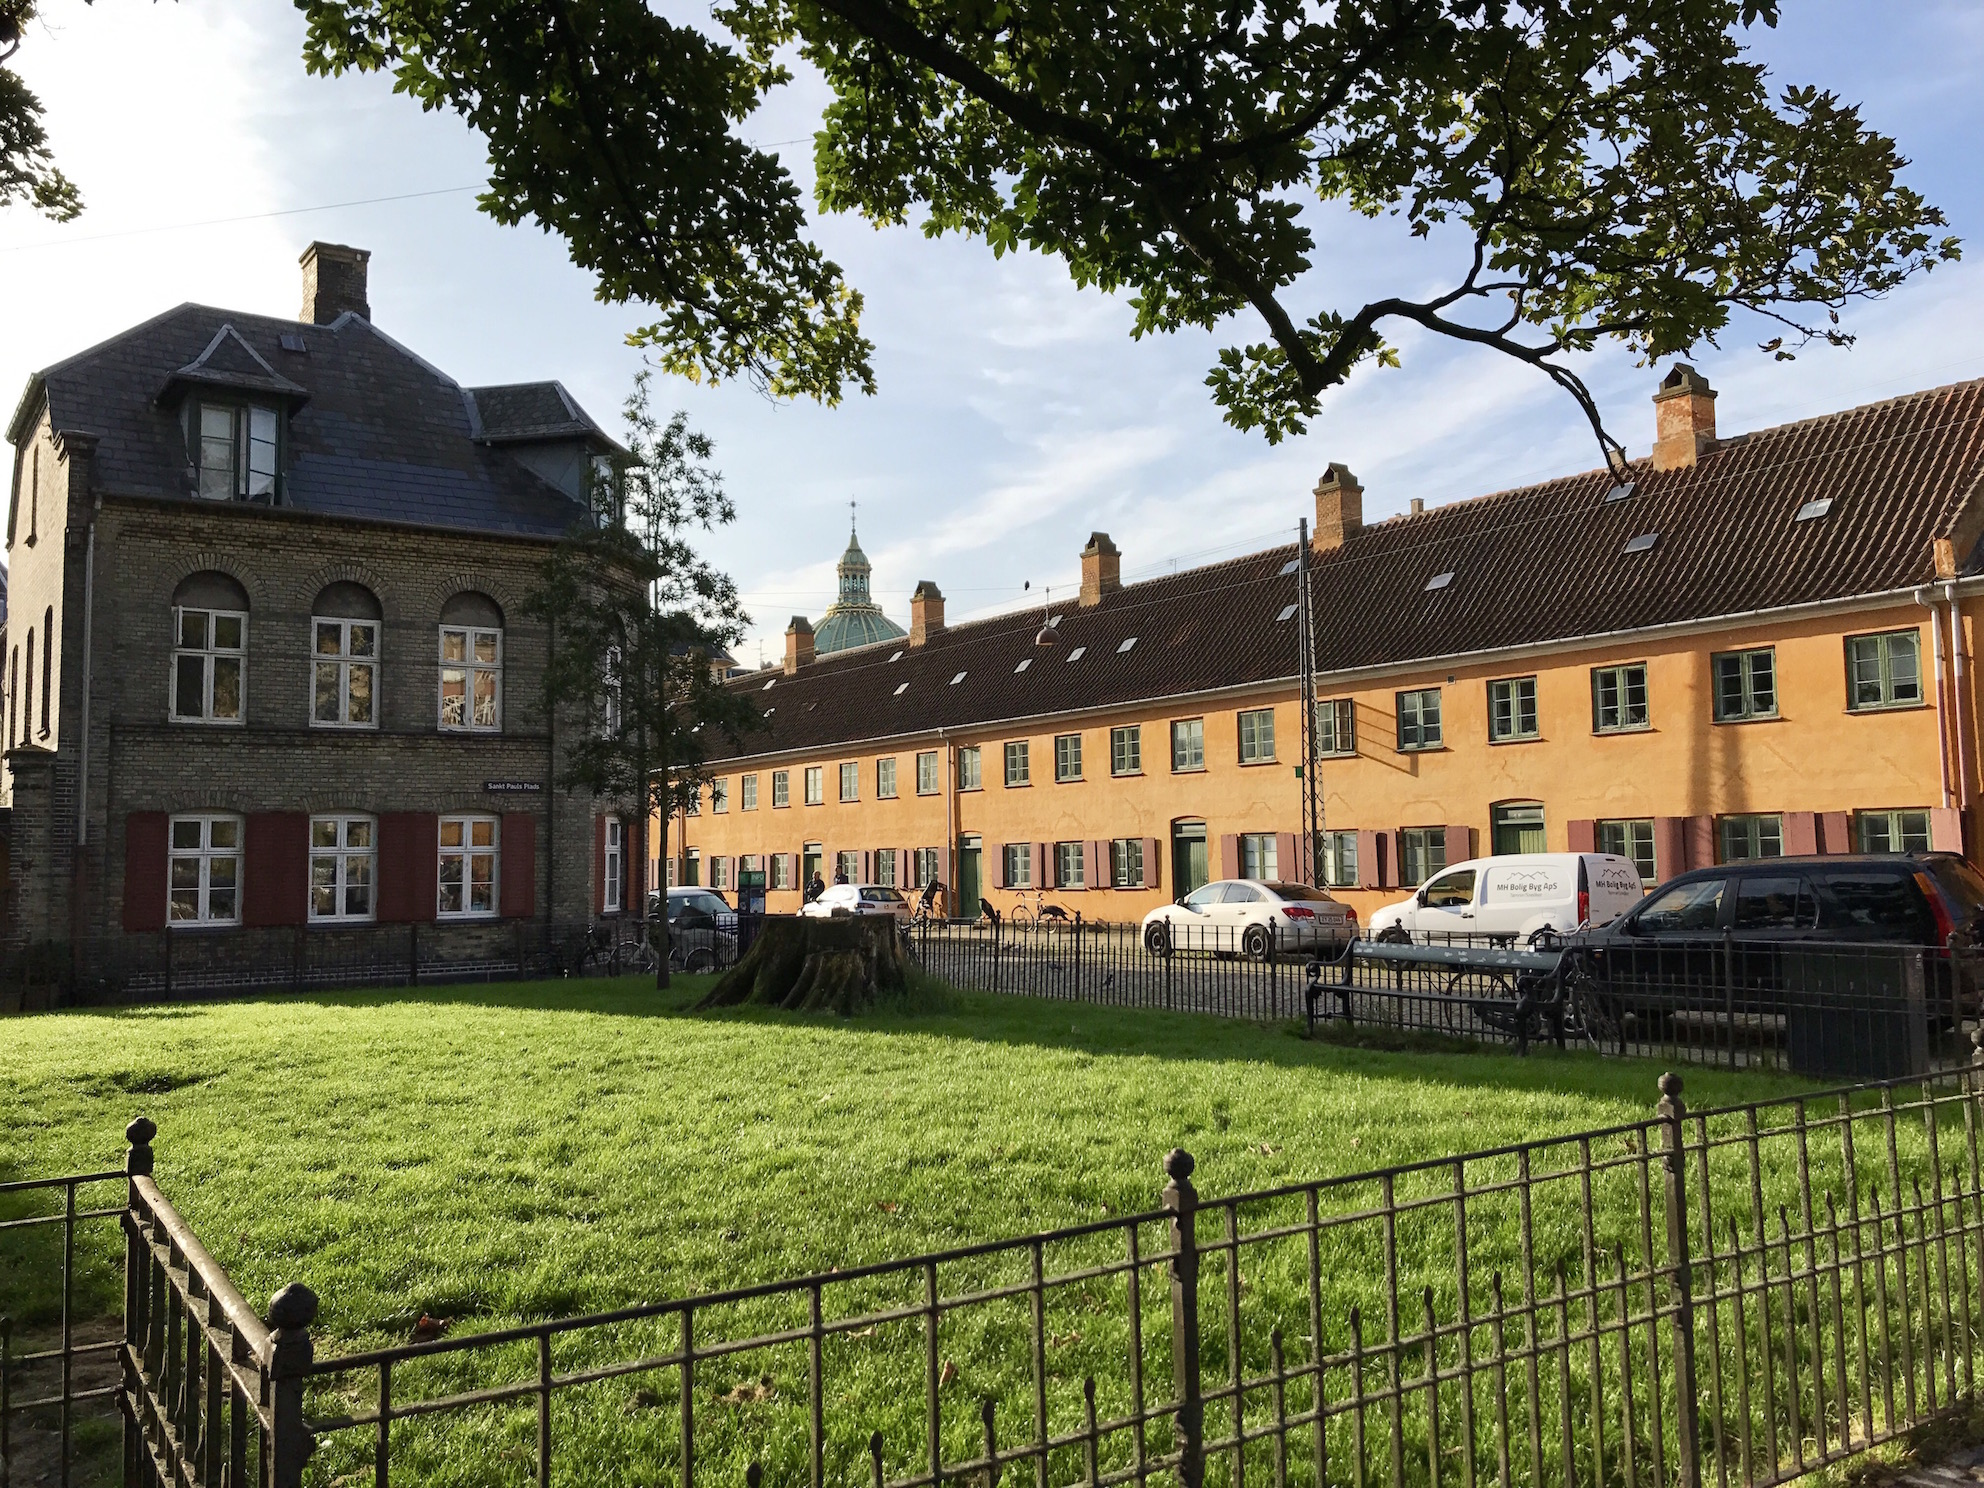 The Nyboder District – Copenhagen s little yellow houses all in a